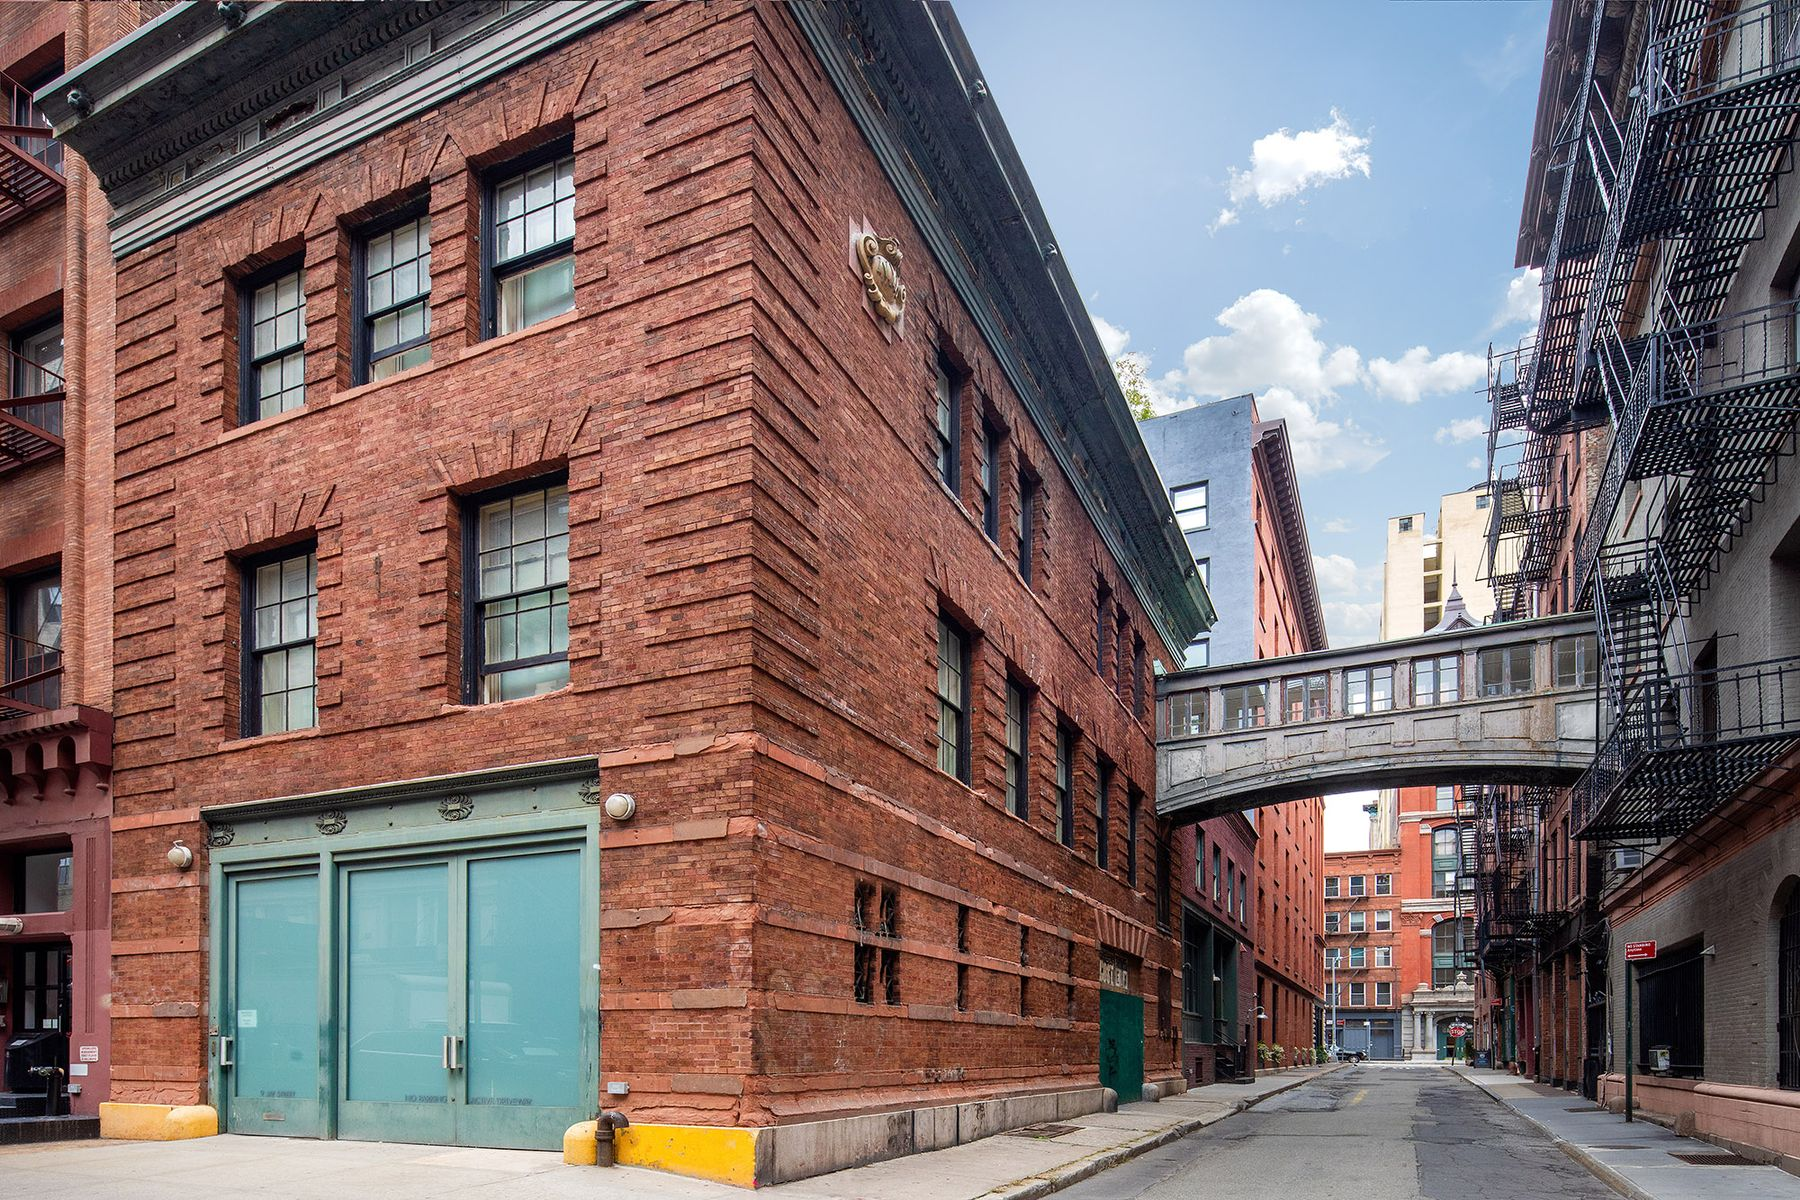 Townhouse for Sale at An Historic Tribeca Treasure 9 Jay Street, New York, New York 10013 United States